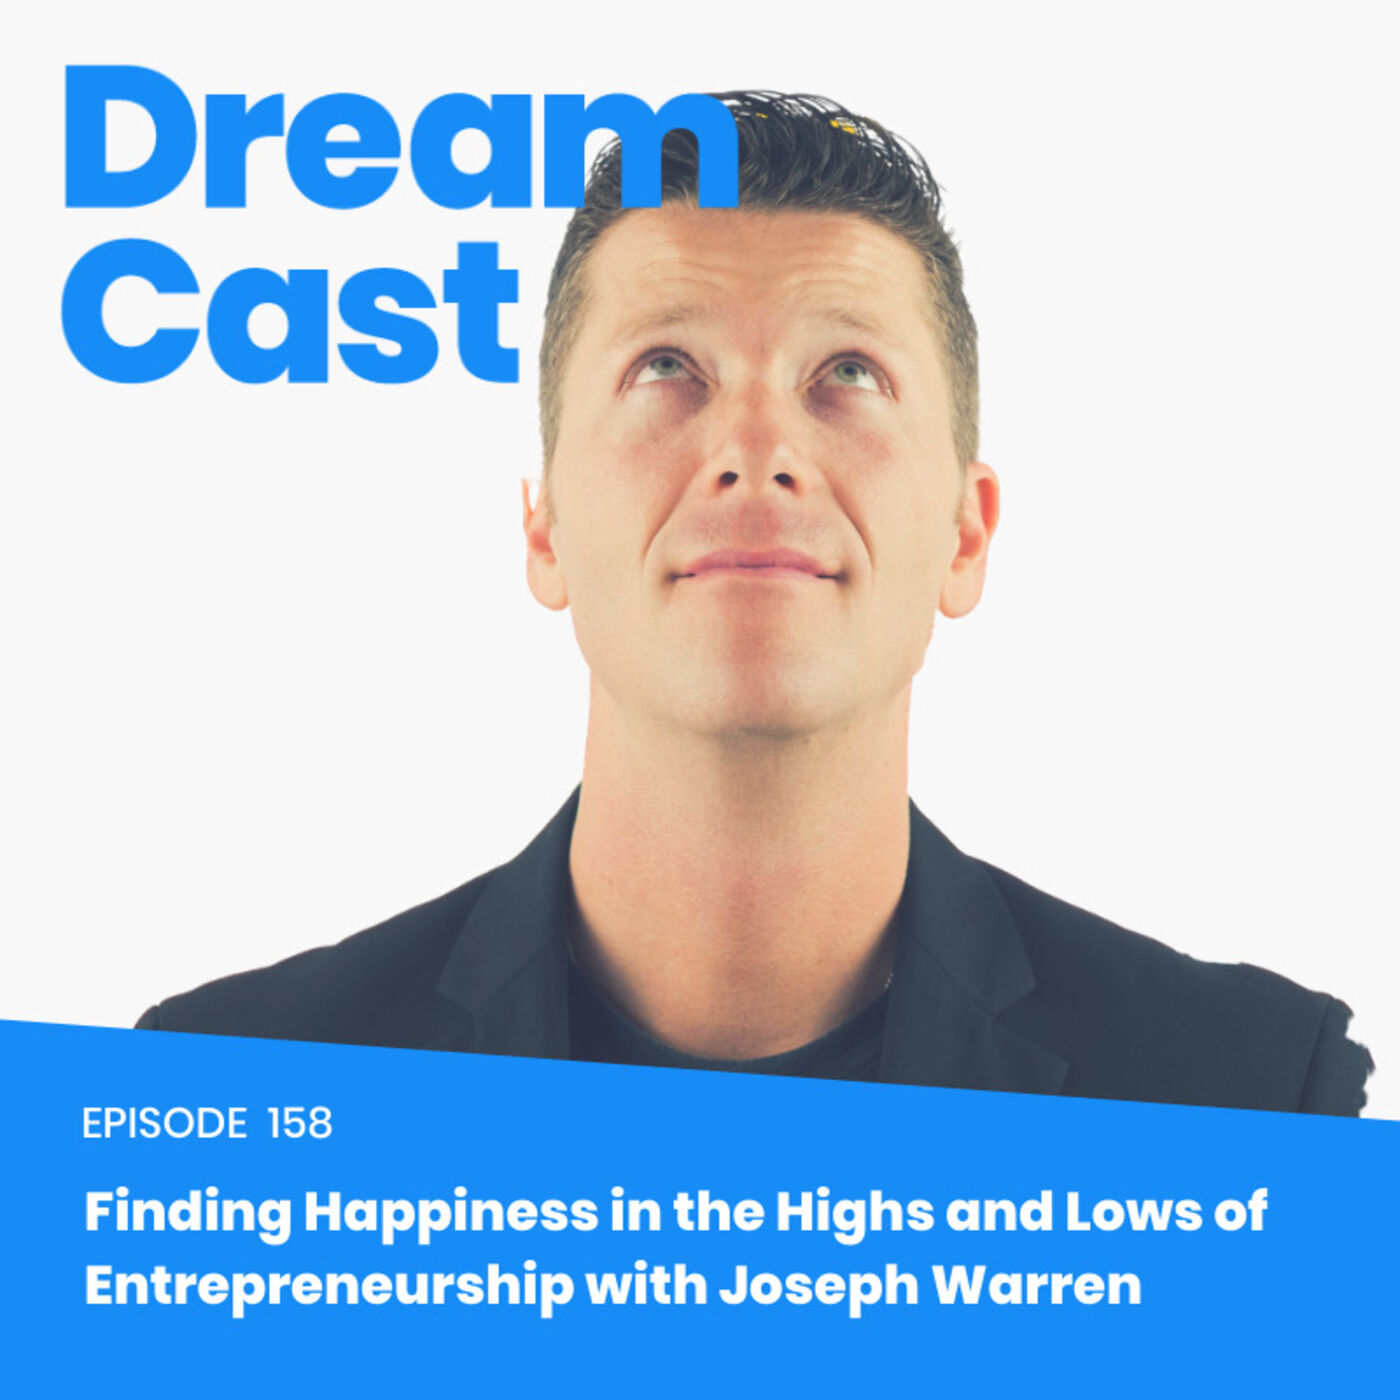 Episode 158 – Finding Happiness in the Highs and Lows of Entrepreneurship with Joseph Warren